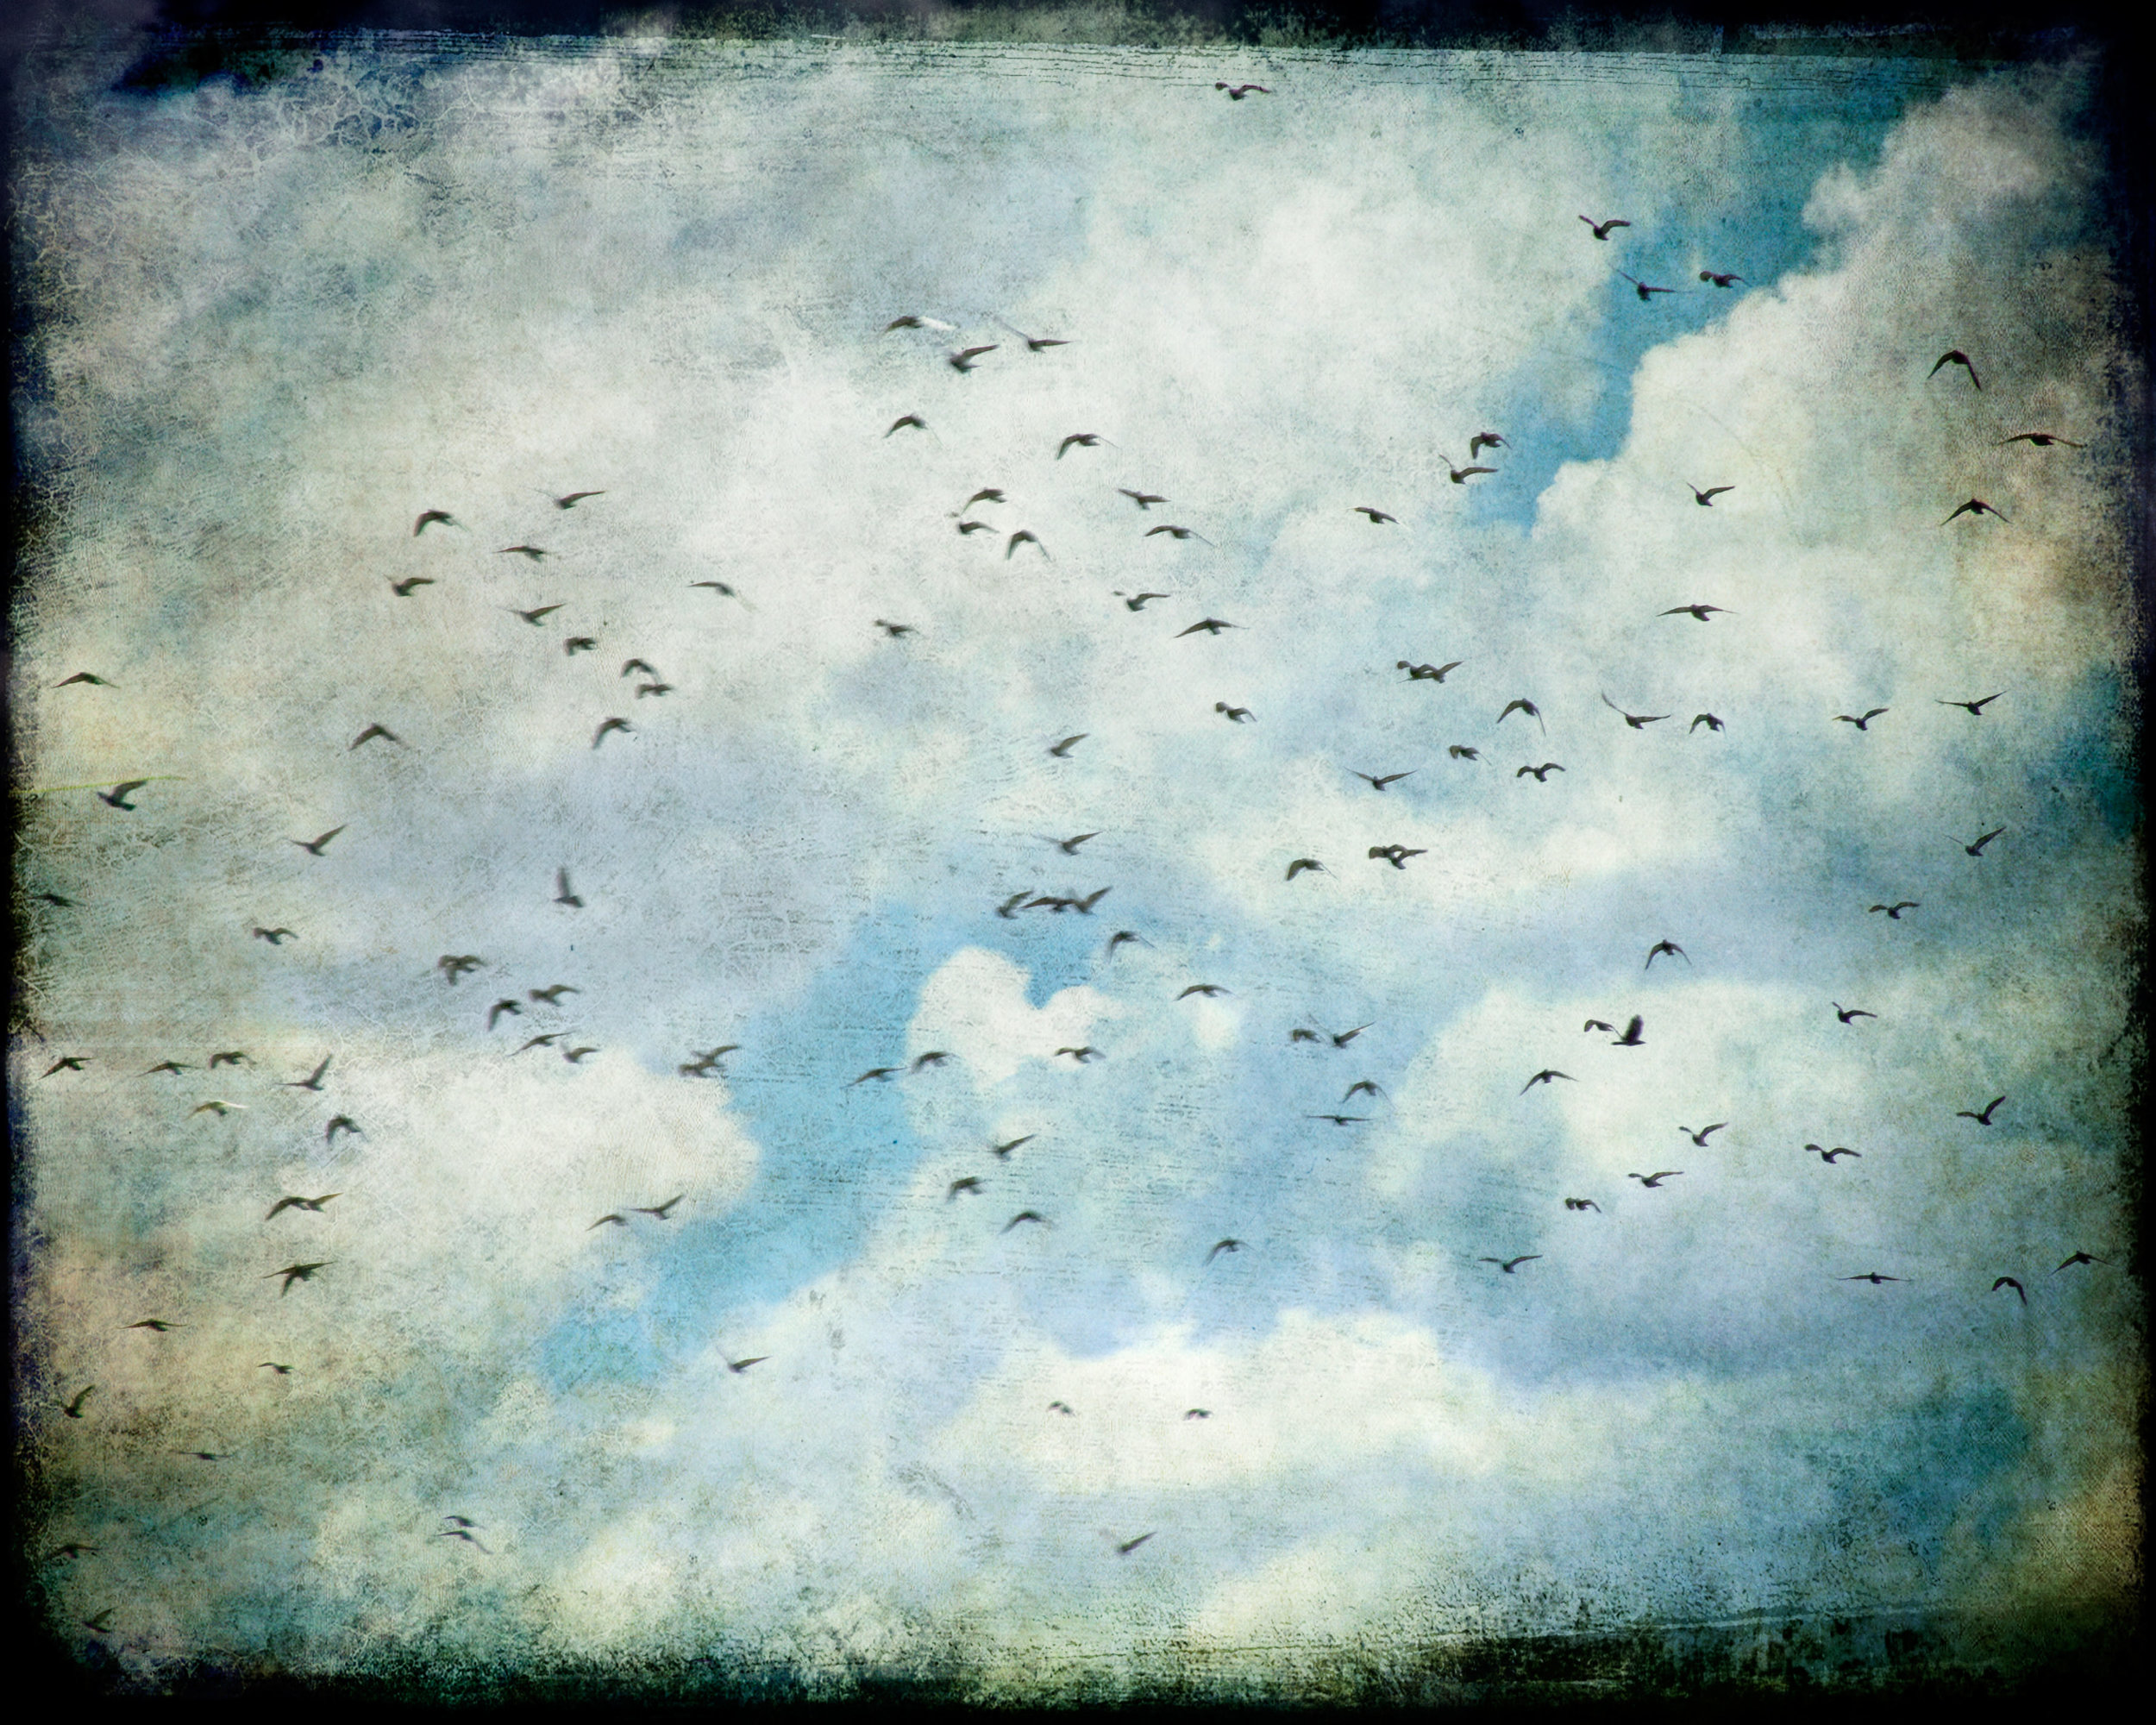 flight-birds-4x5r-1094.jpg